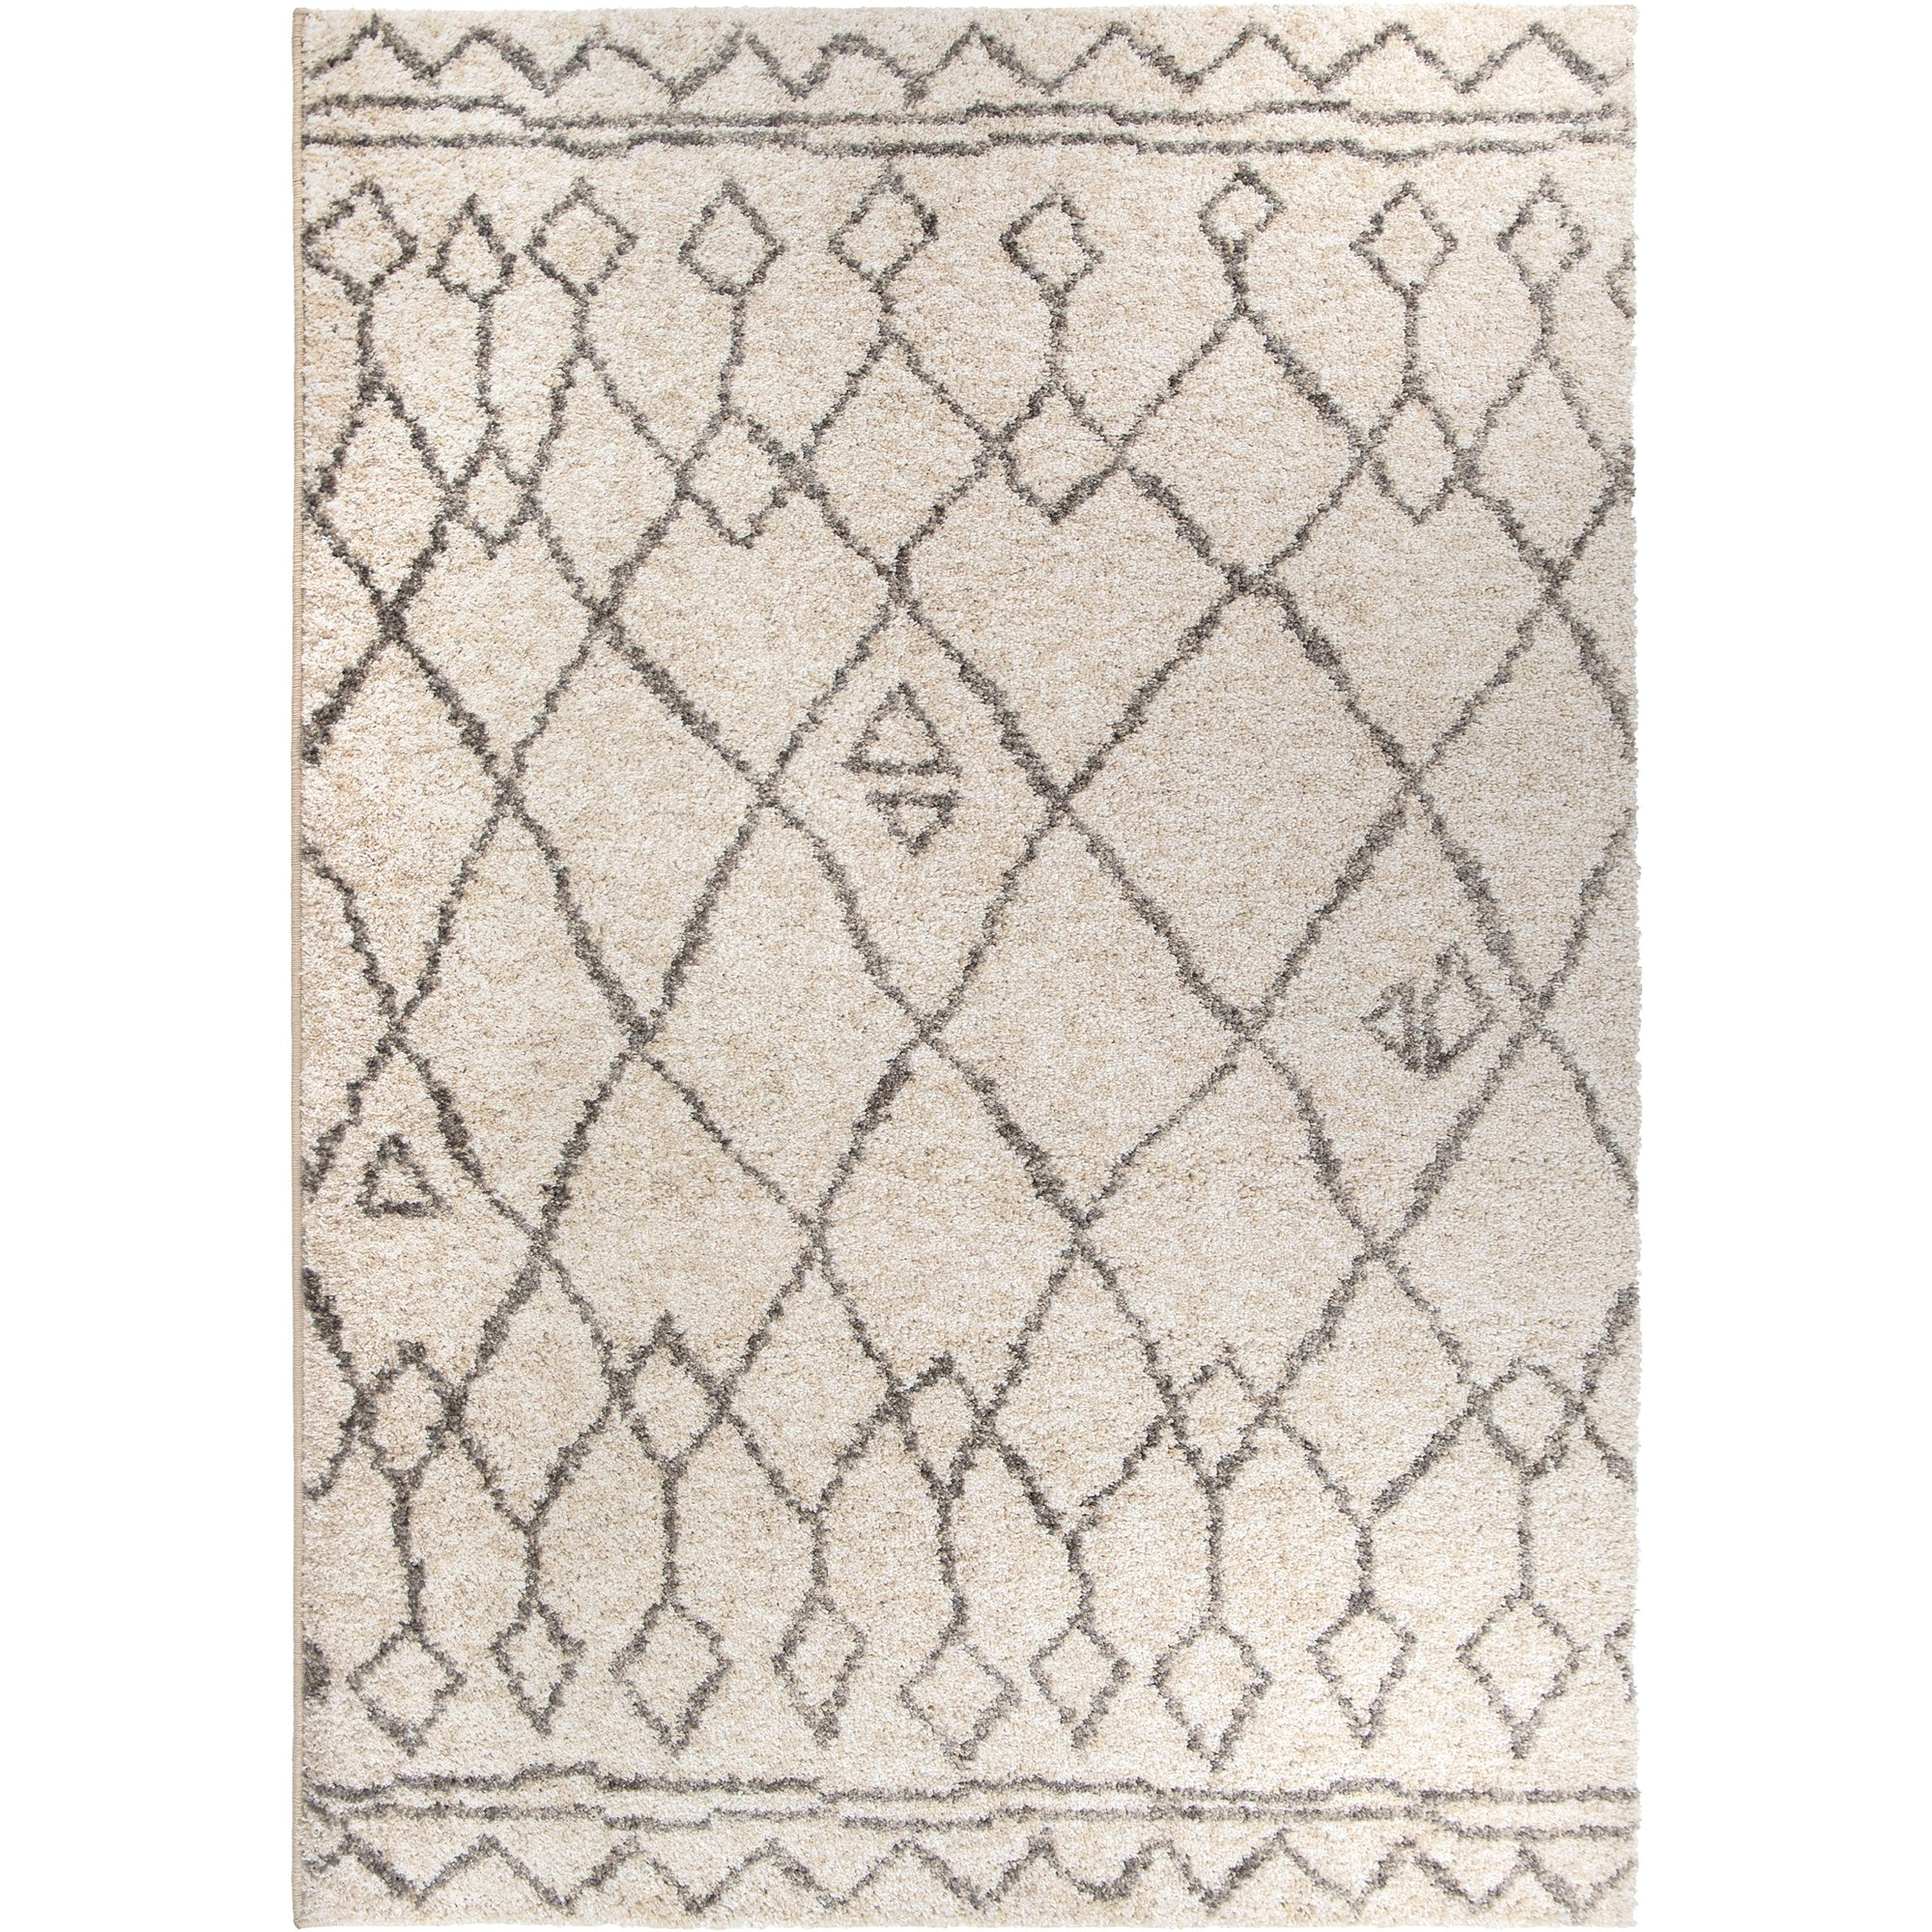 "Palmetto Living Casablanca Tribal 01 Lambswool Area Rug - 2'3"" x 8'"